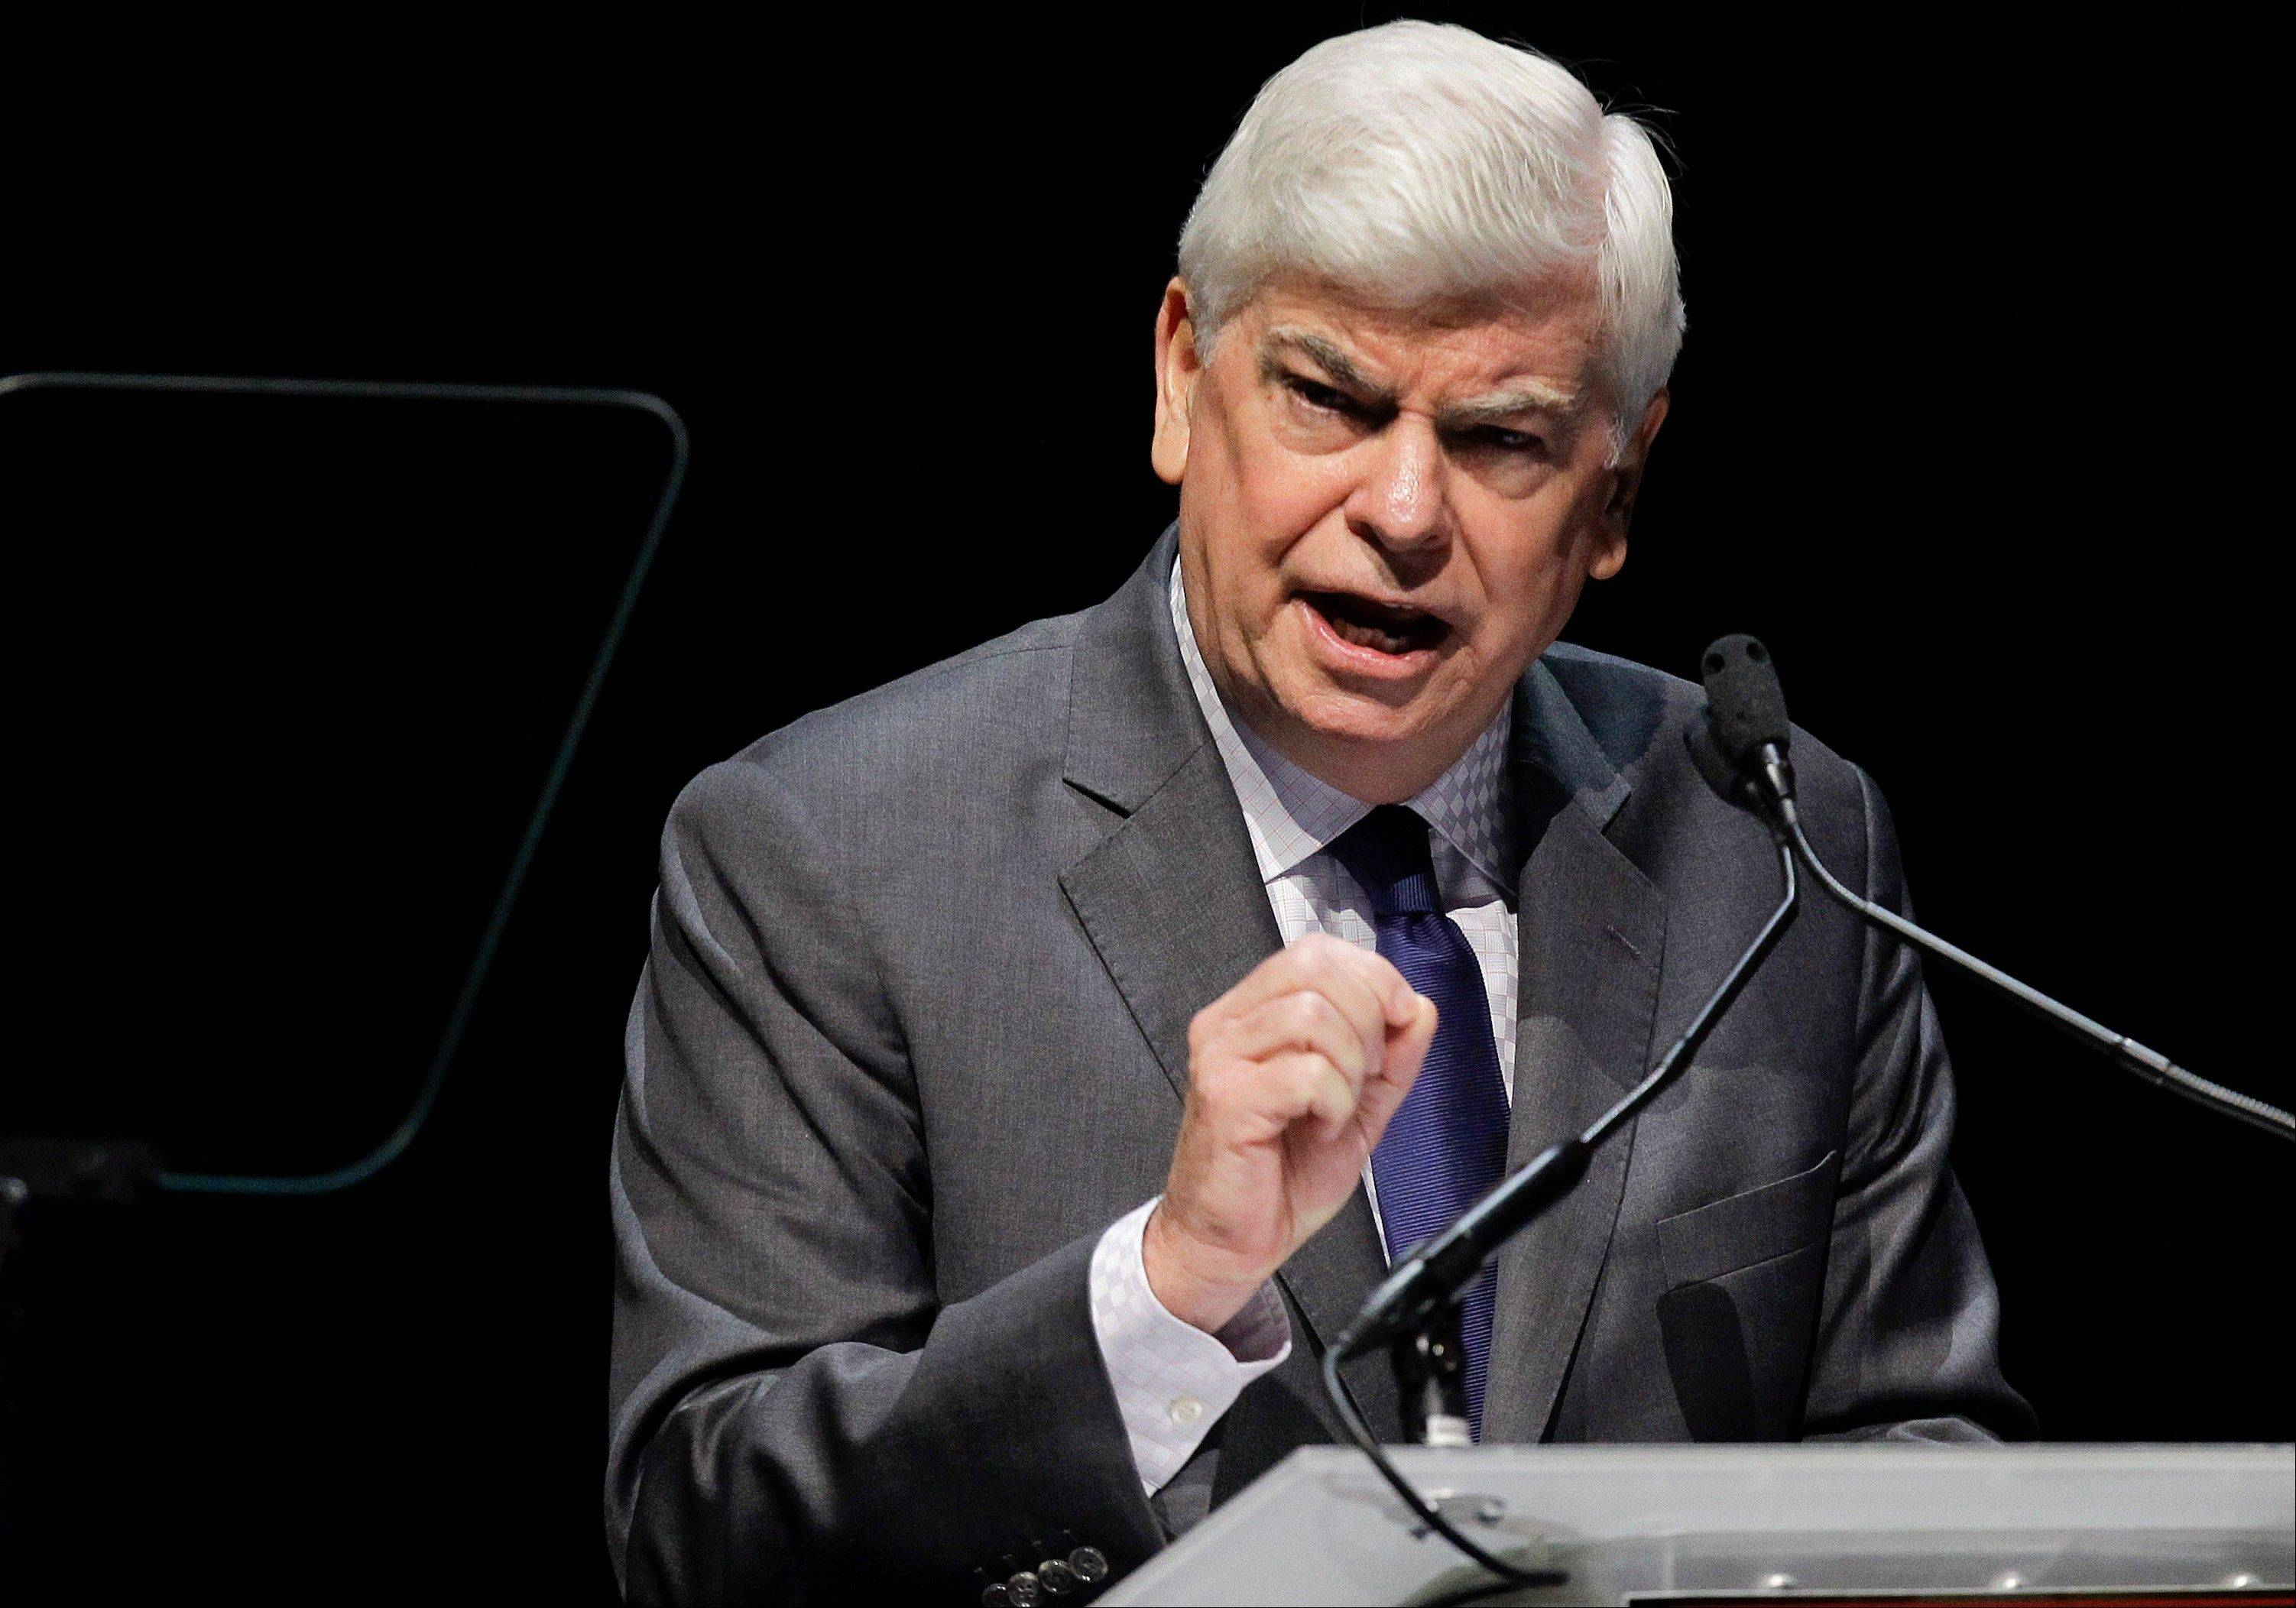 Motion Picture of Association of America of Chief Executive Chris Dodd speaks during his CinemaCon State of the Industry address in Las Vegas.